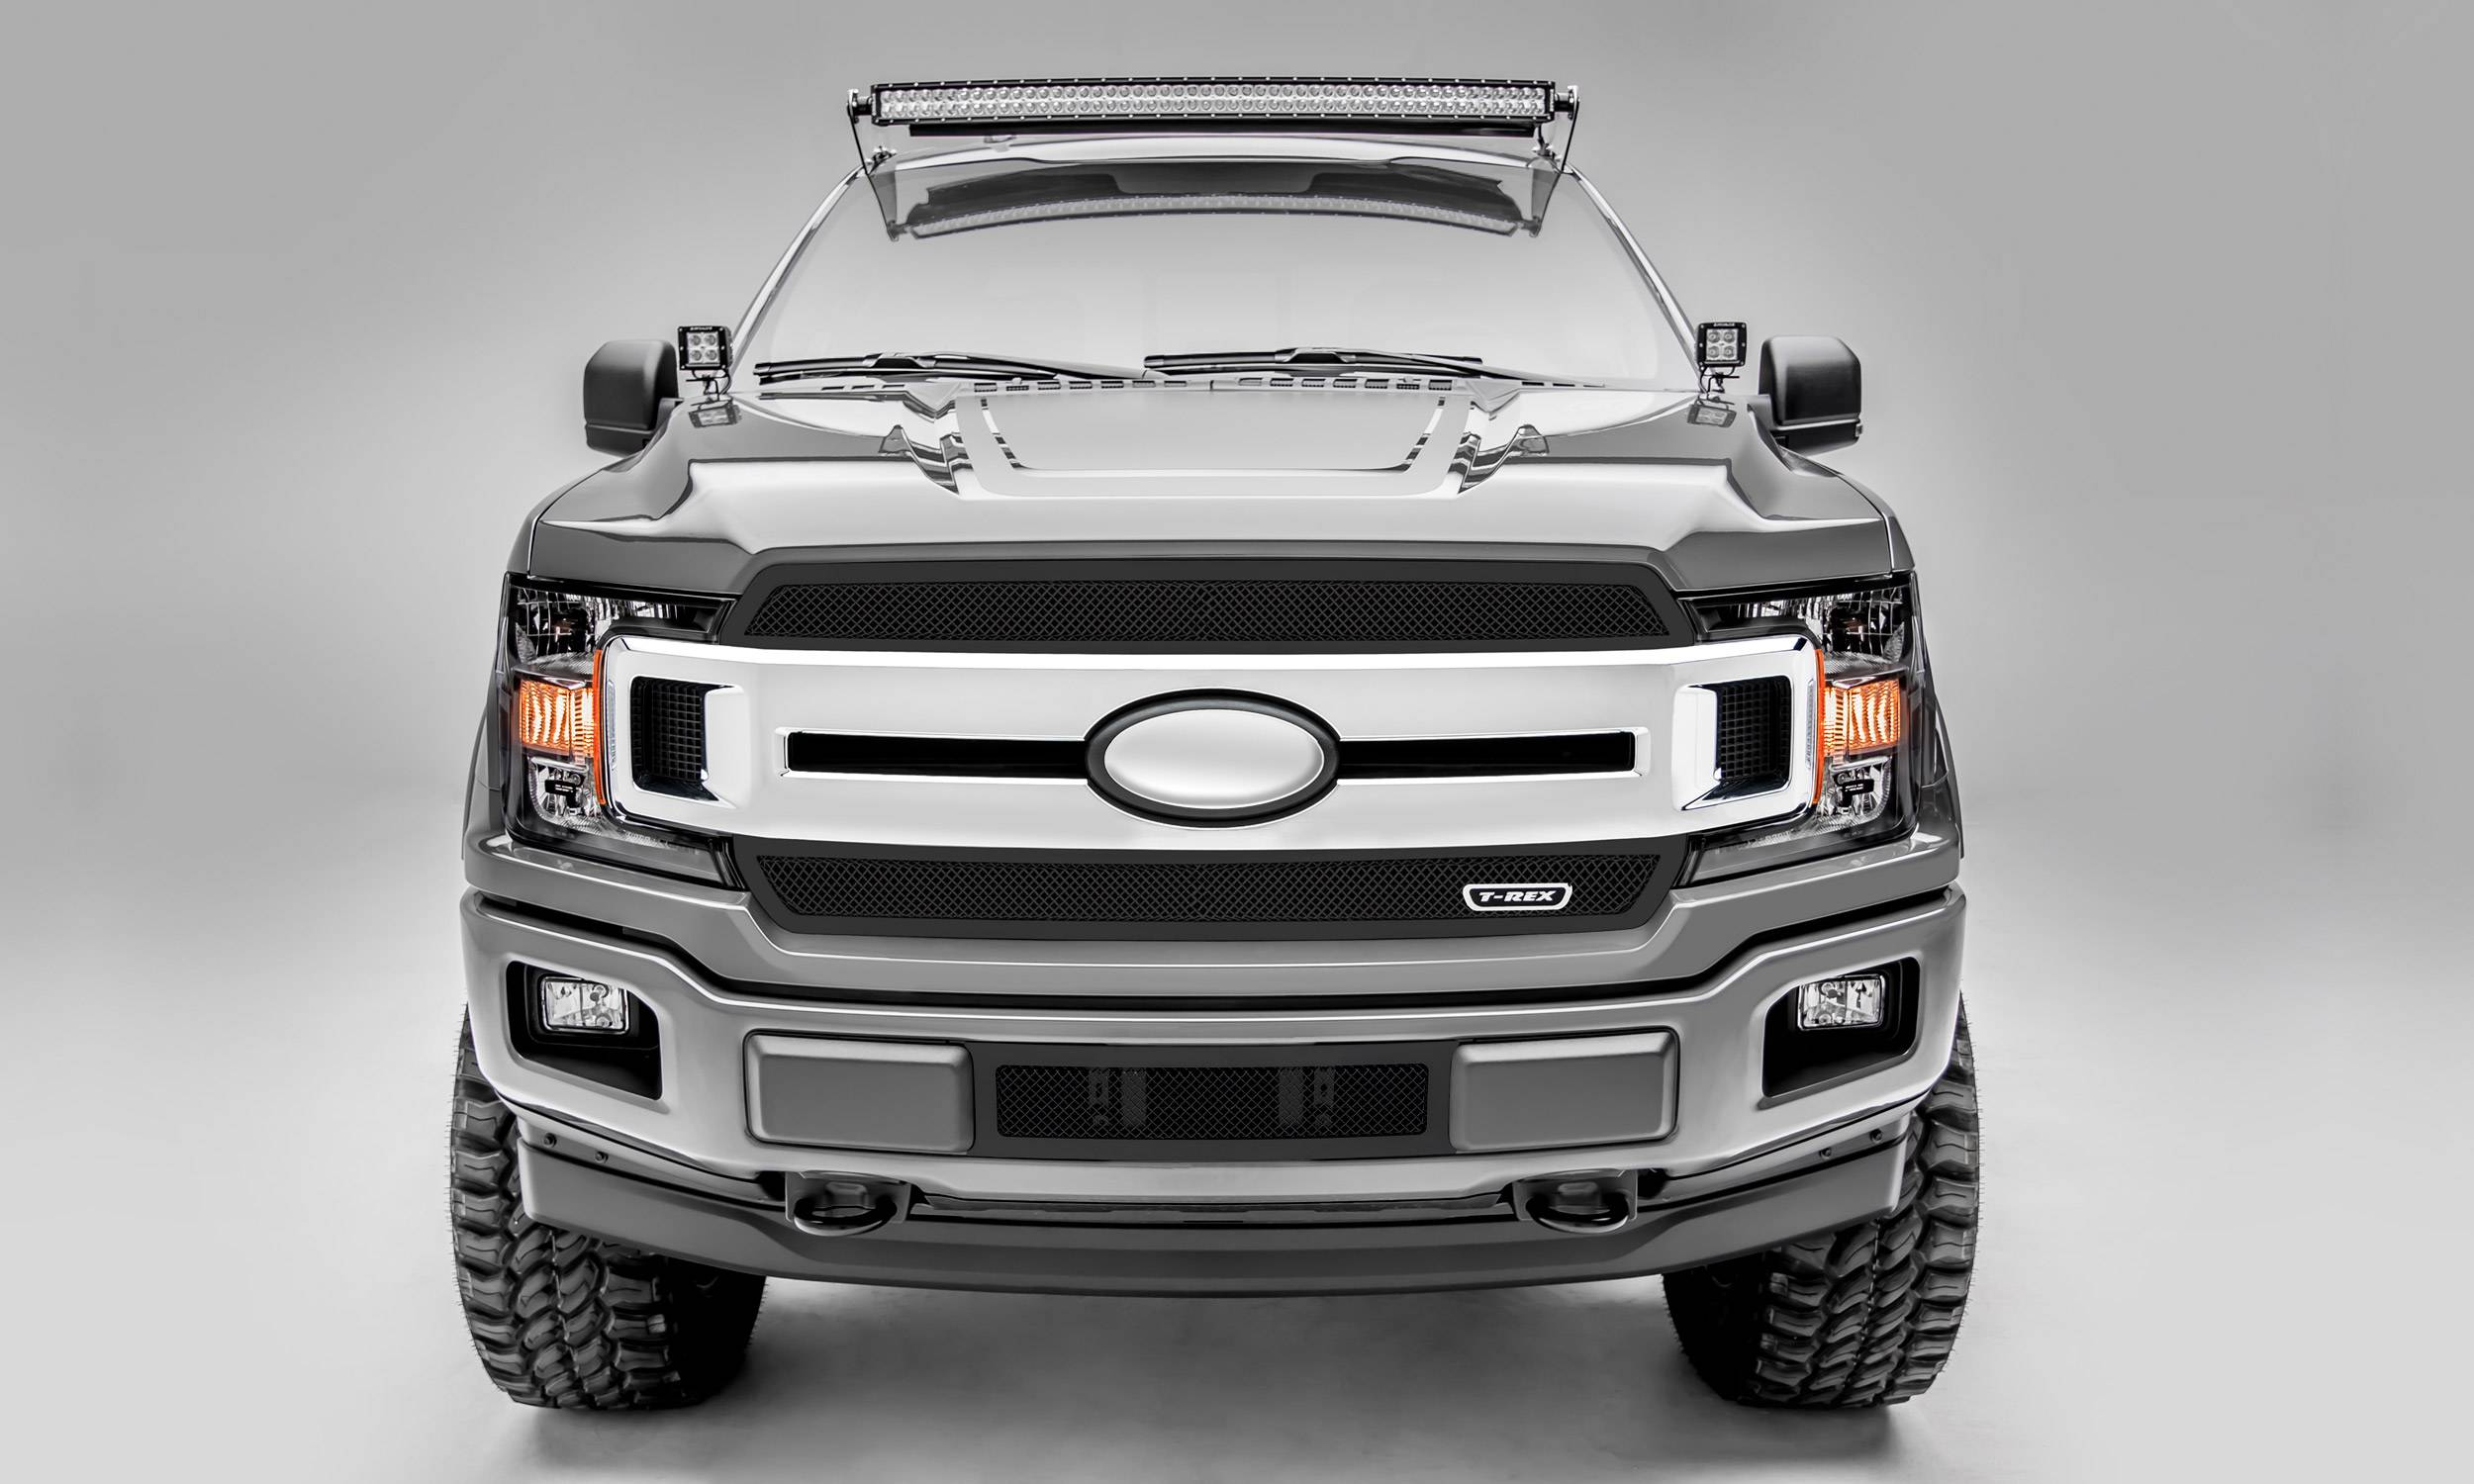 T-REX Grilles - 2018-2020 F-150 XLT, Lariat Upper Class Series Main Grille, Black, 2 Pc, Overlay/Insert, Does Not Fit Vehicles with Camera - PN #51711